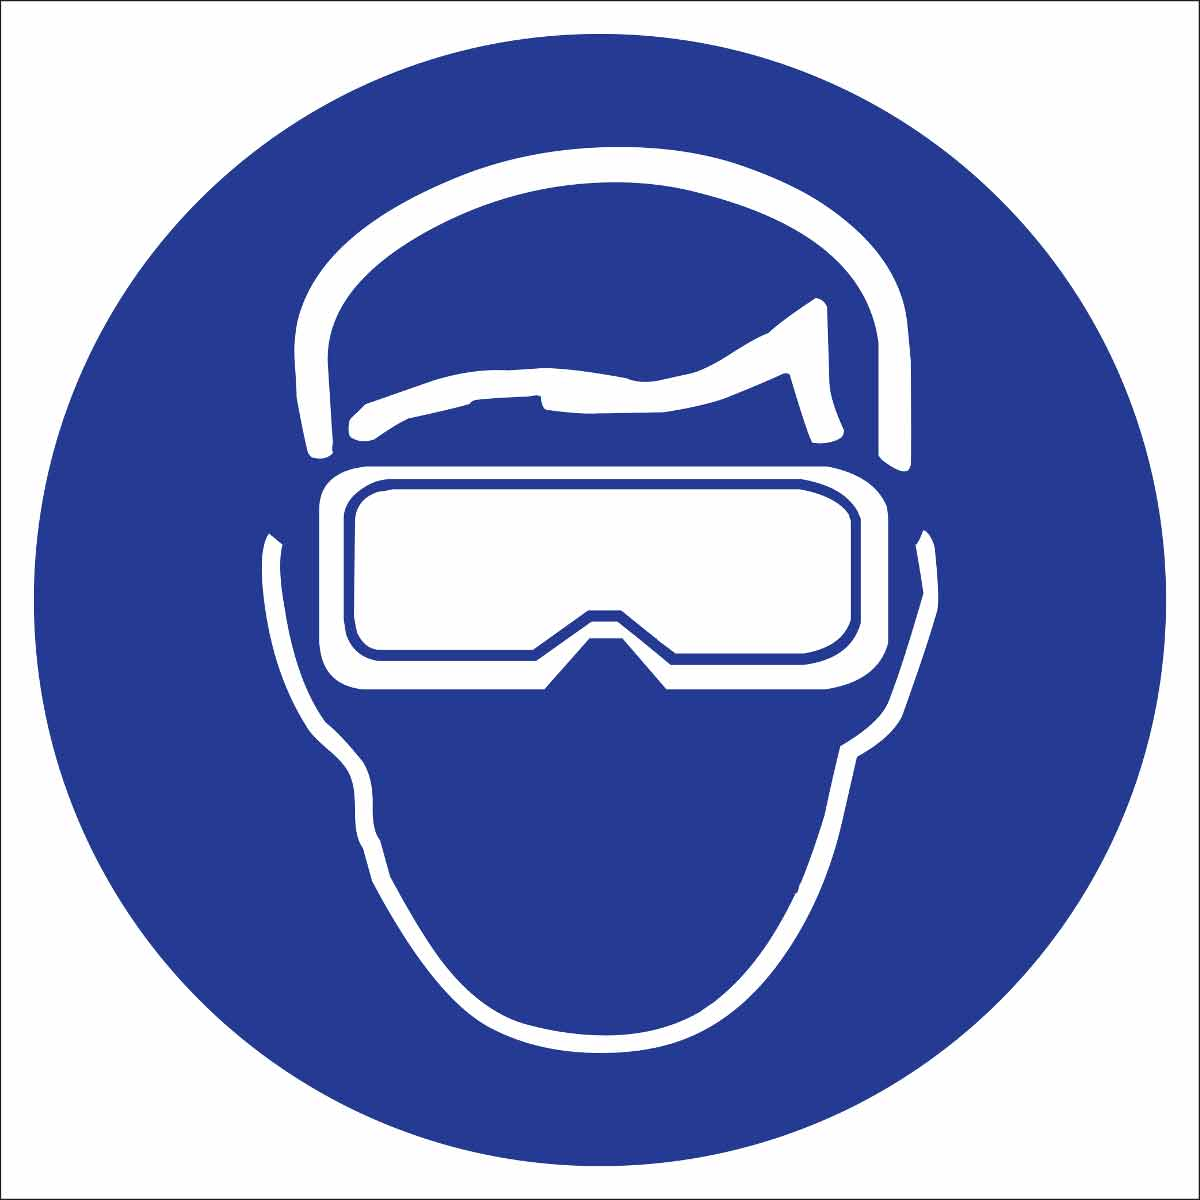 brady part 58525 safety goggles symbol labels bradyidcom